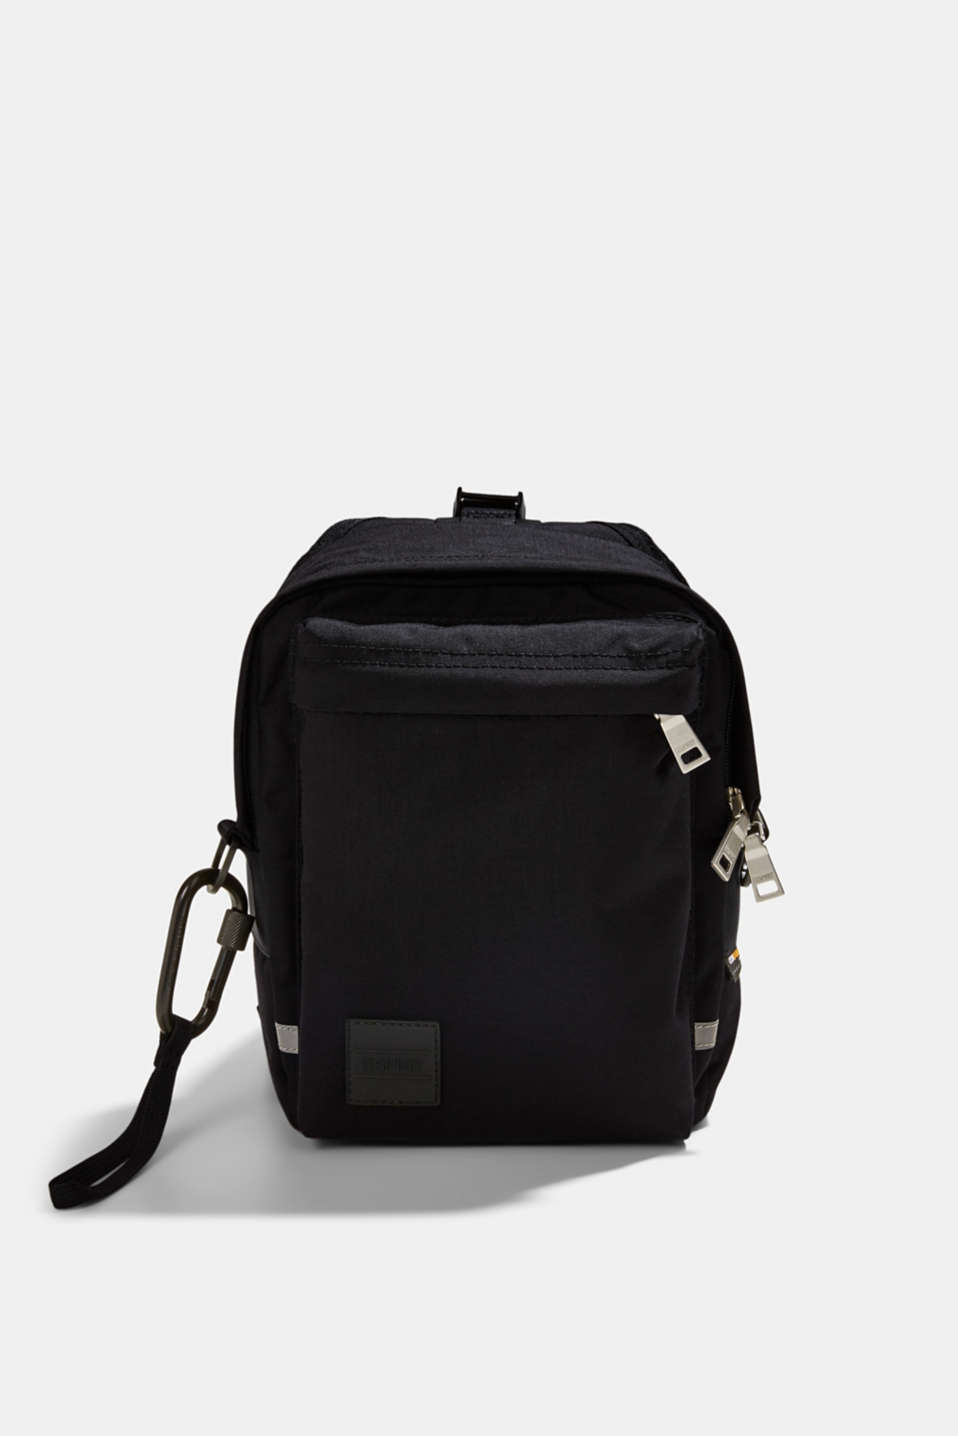 Esprit - Sling backpack made of CORDURA NYLON™